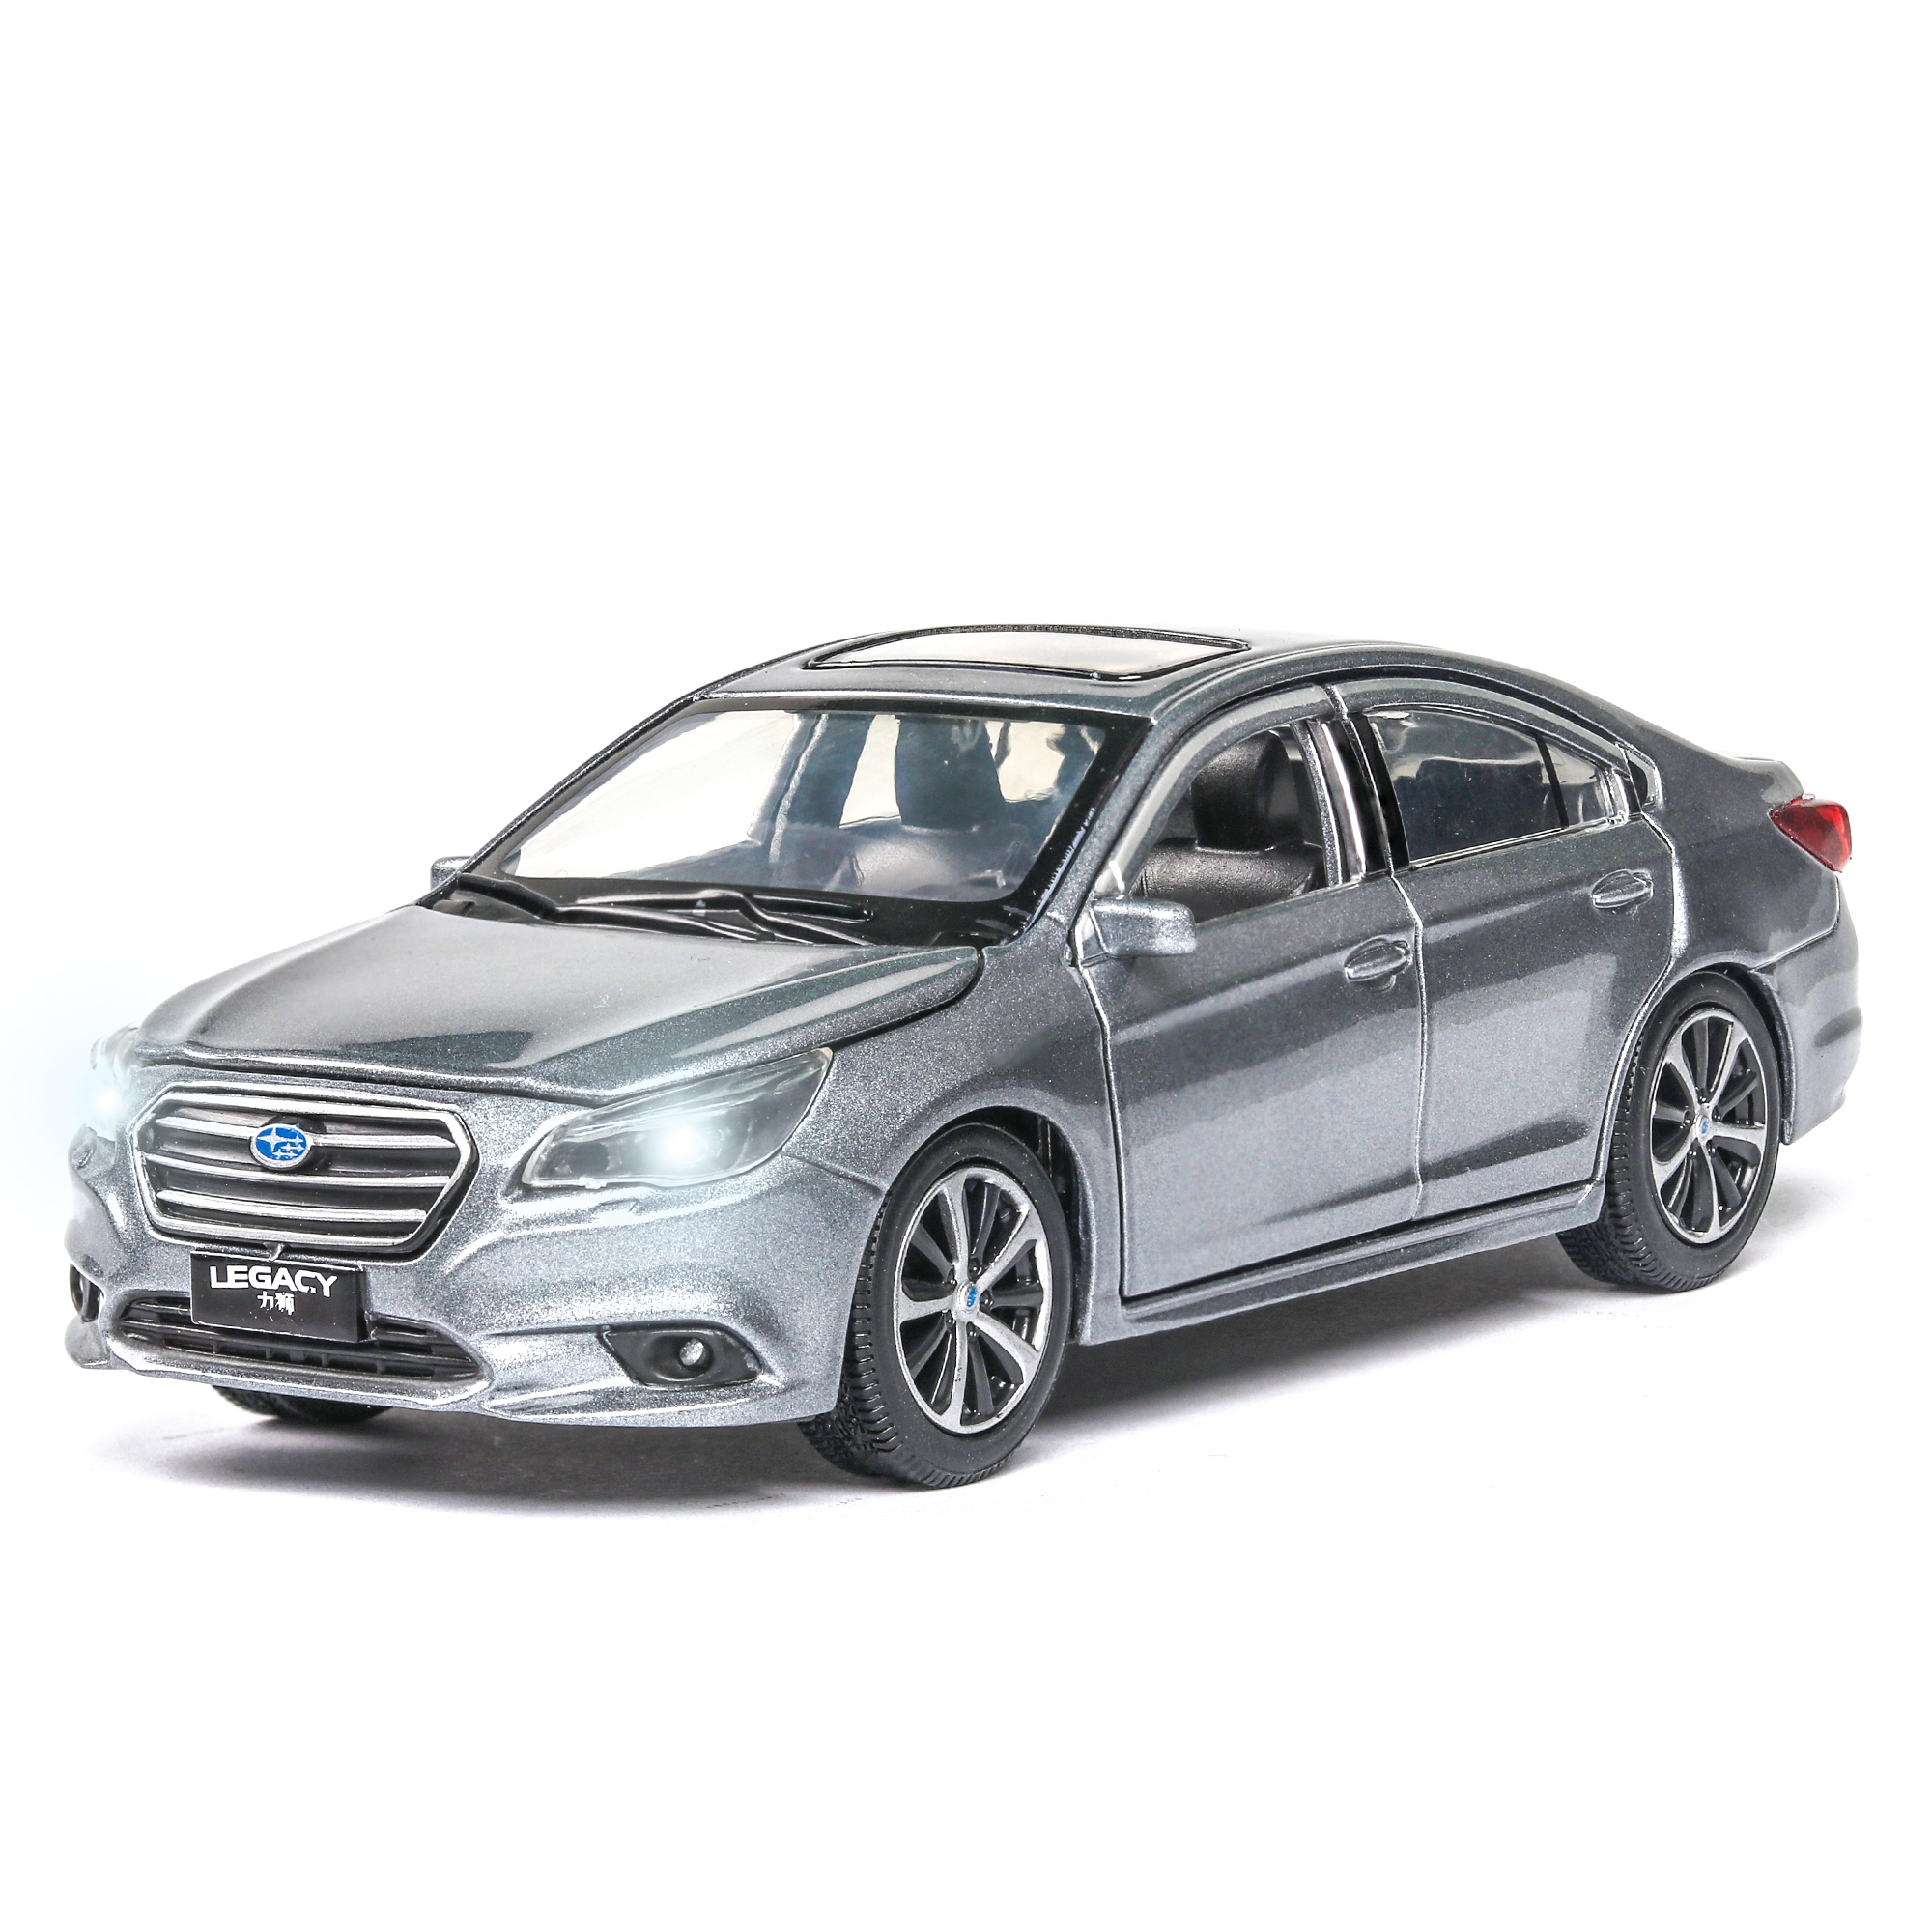 1:32 High Simulation Subaru Legacy Opening Door With Sound And Light Children's Toy Alloy Car Model For Children Gifts Hot Sale